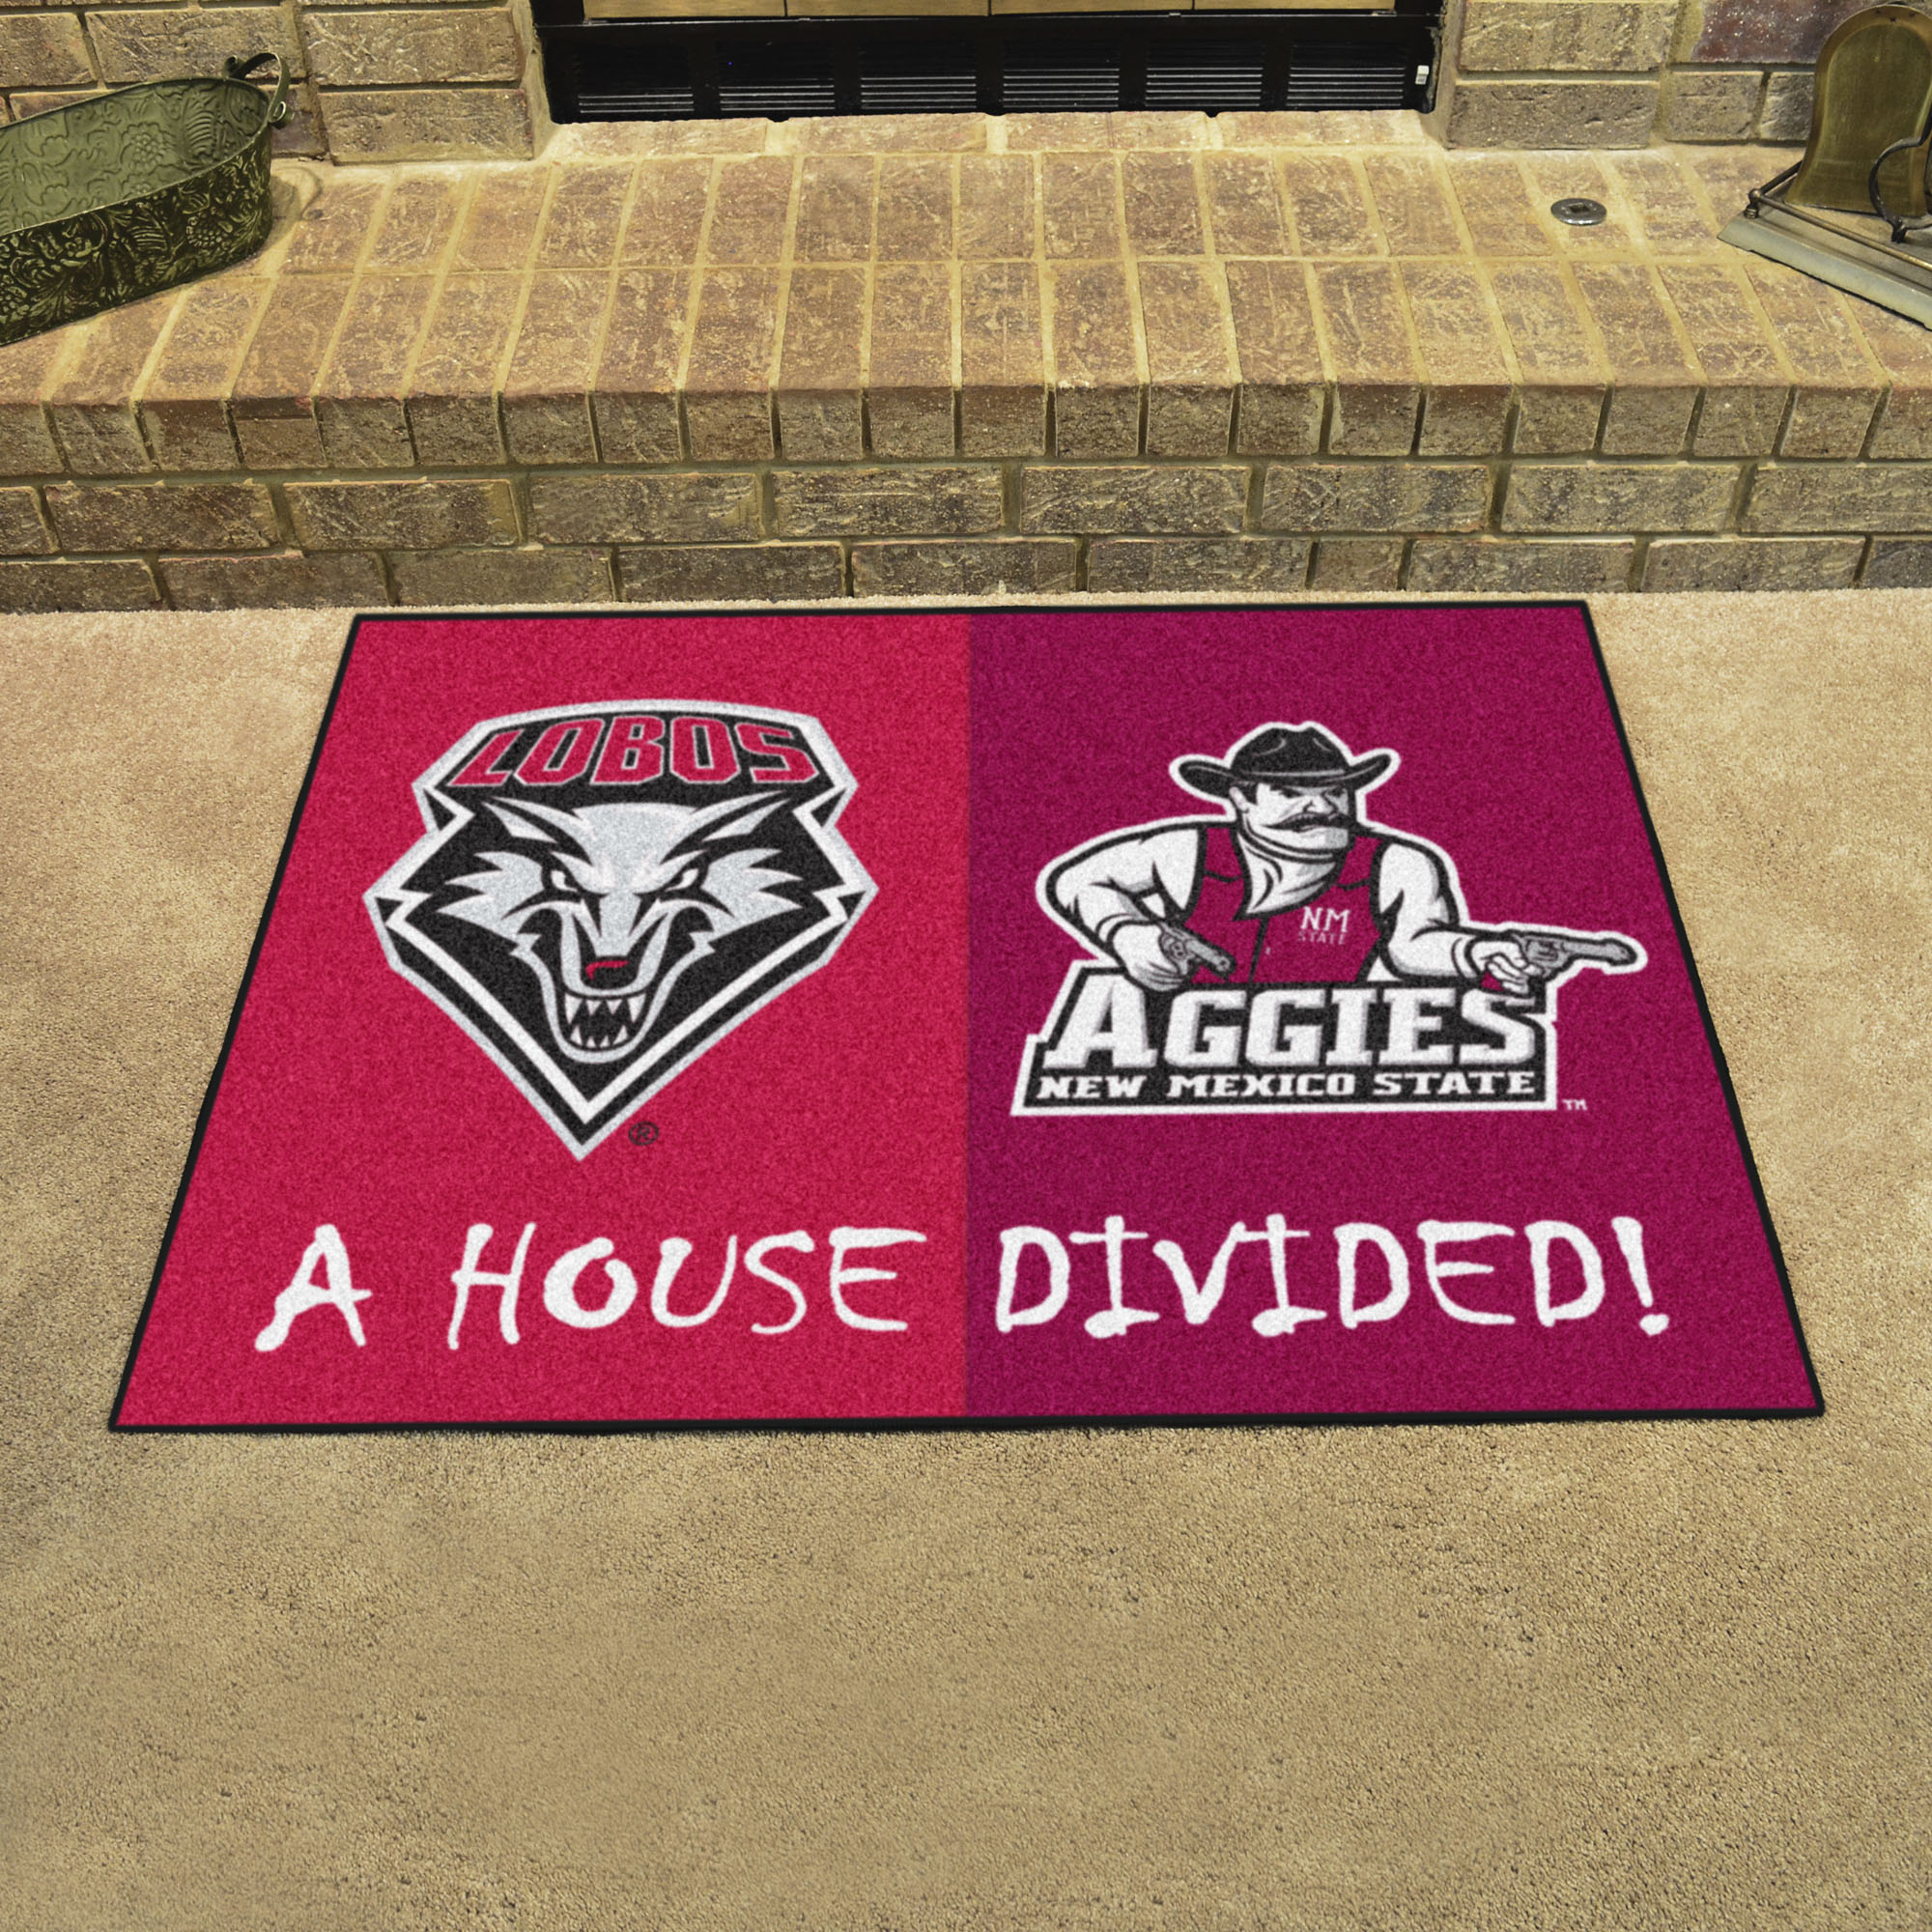 NCAA House Divided Rivalry Rug New Mexico Lobos - New Mexico State Aggies